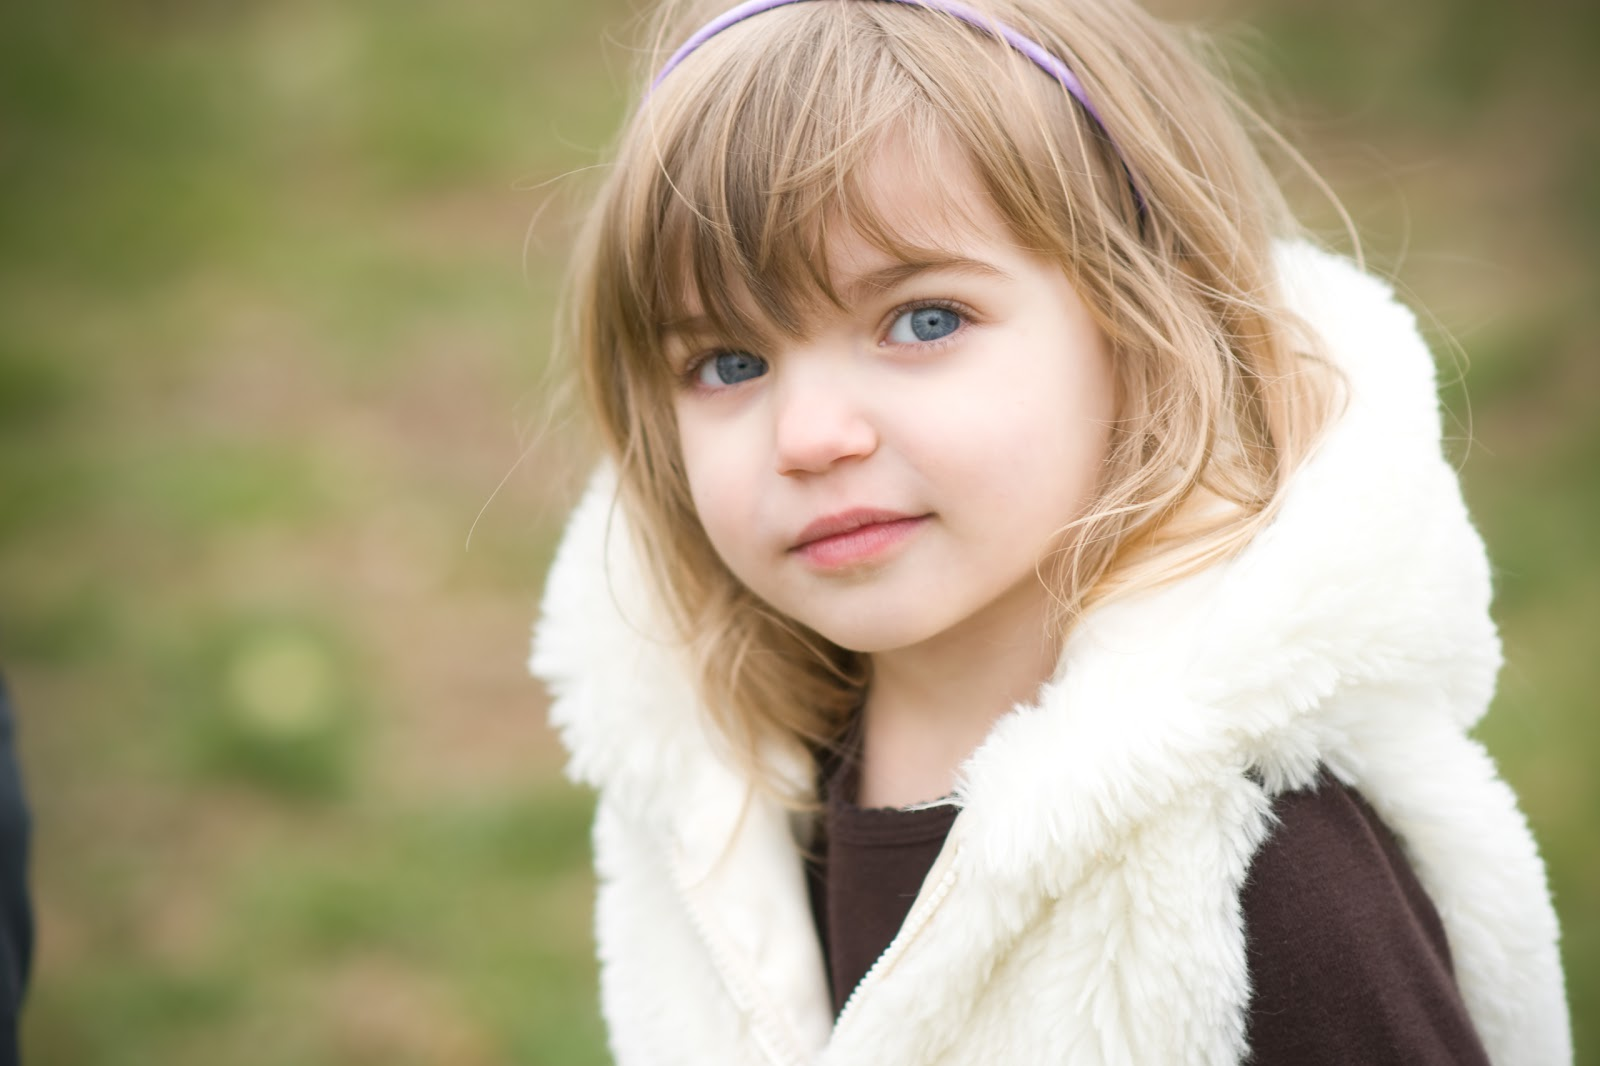 cute baby innocent eyes wallpapers - Cute baby innocent eyes Wallpapers HD Wallpapers